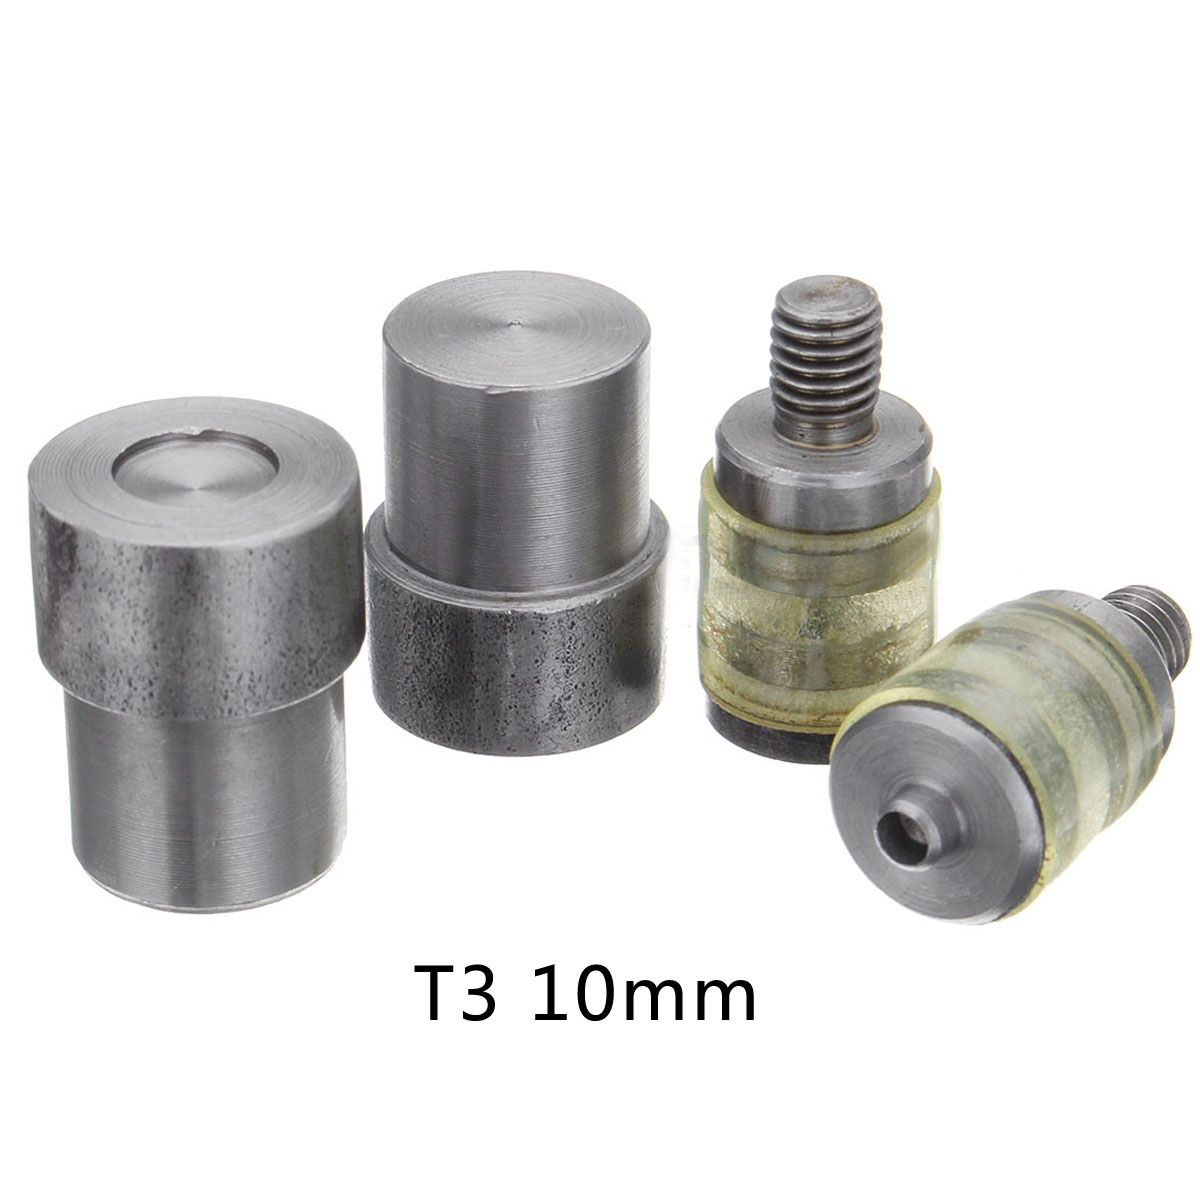 9.5-15mm Manual Claw Clasp Snap Fastener Dies Hand Pressure Pressing Clamp Machine Tool Snap Press Machine  Press Machine Die